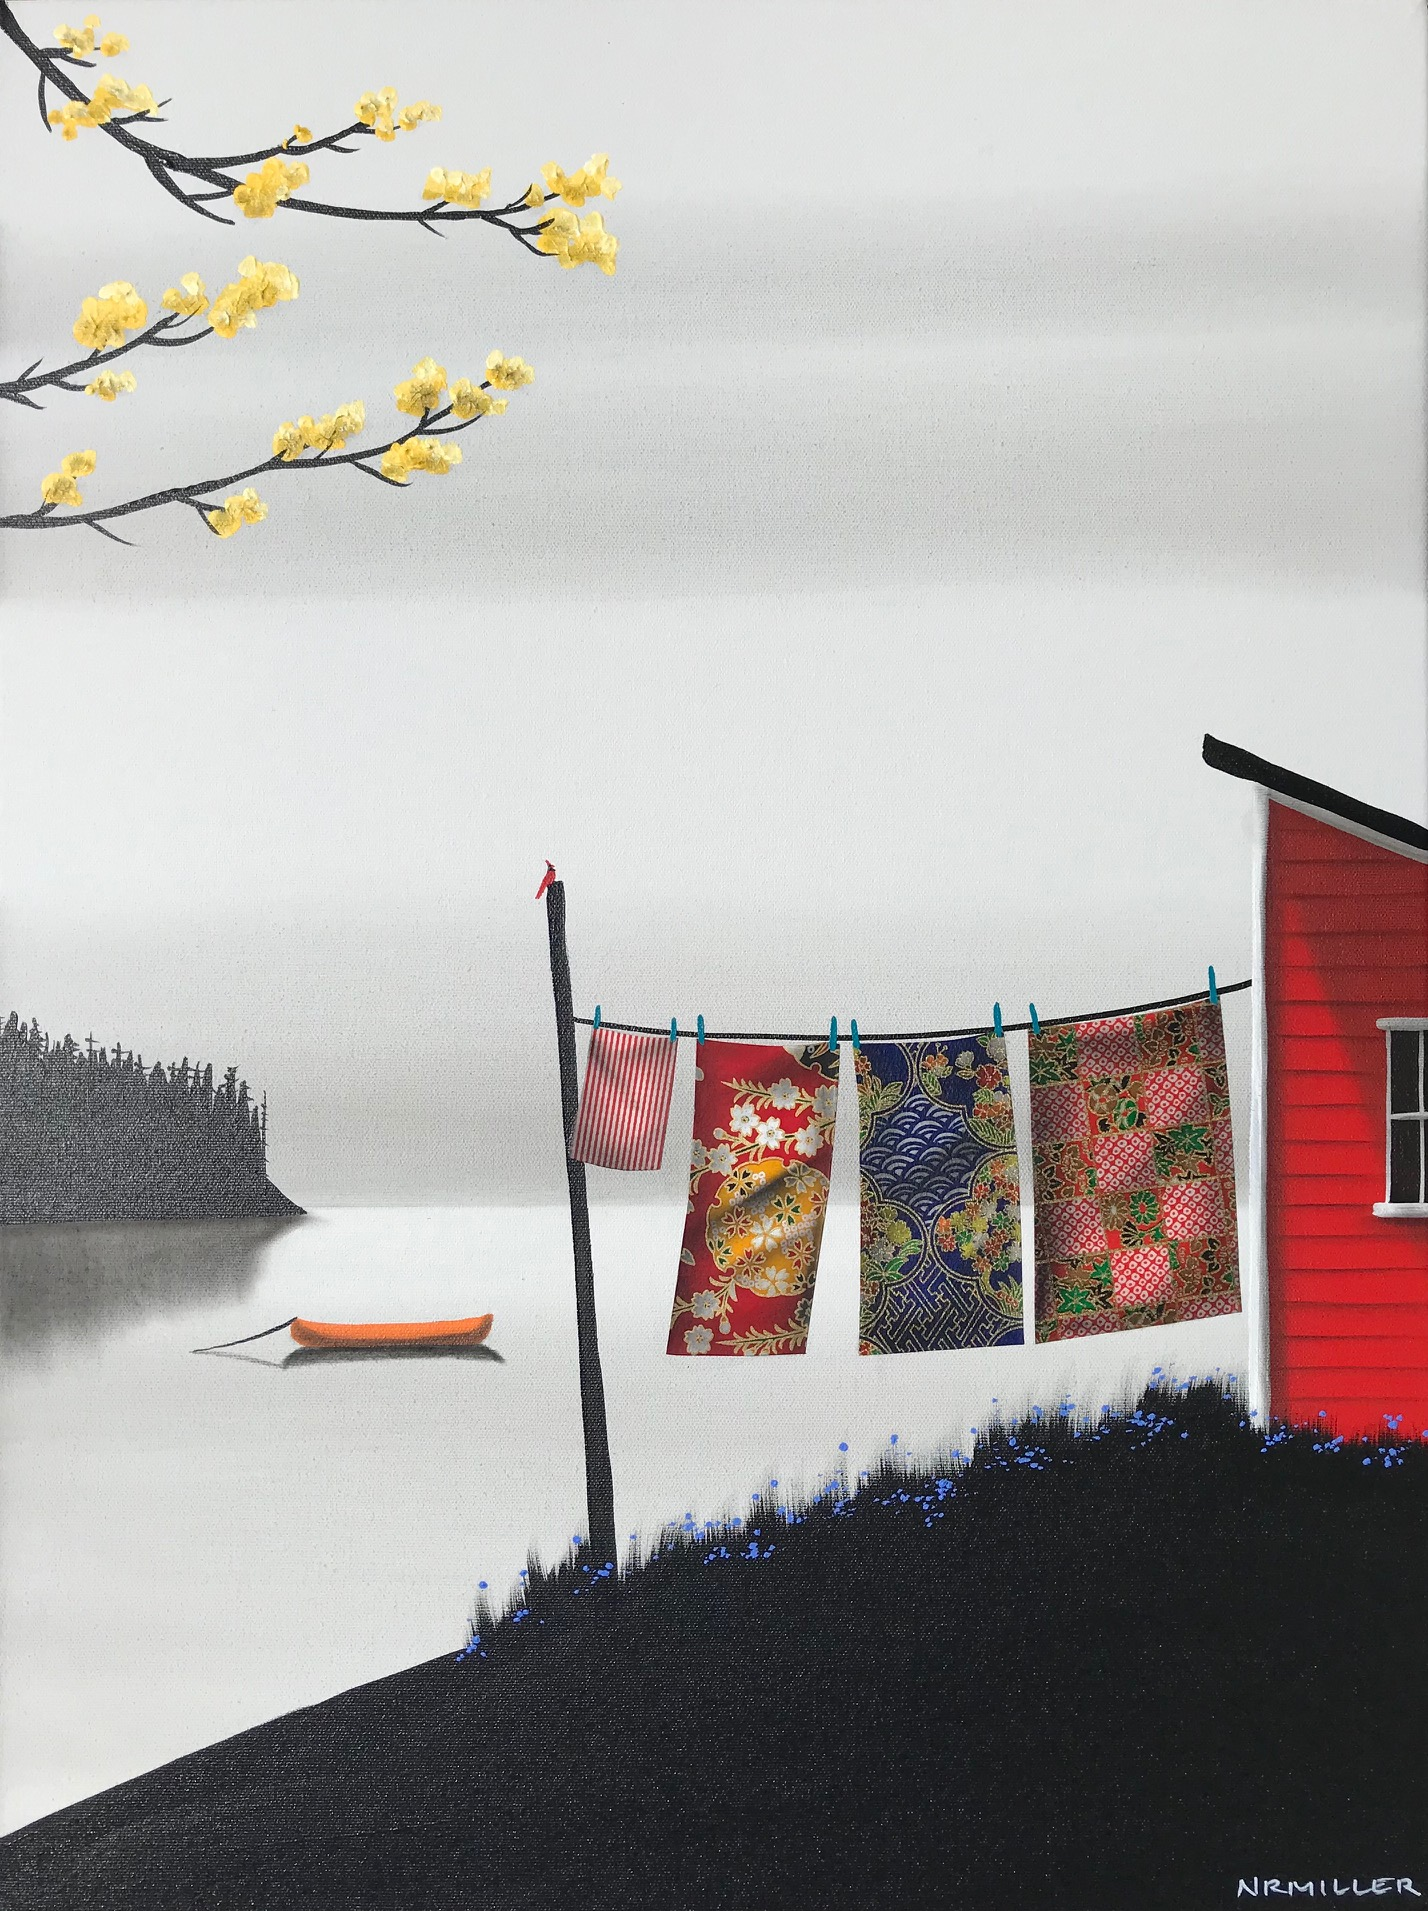 The Joy of Laundry Day, mixed media landscape painting by Natasha Miller | Effusion Art Gallery + Cast Glass Studio, Invermere BC